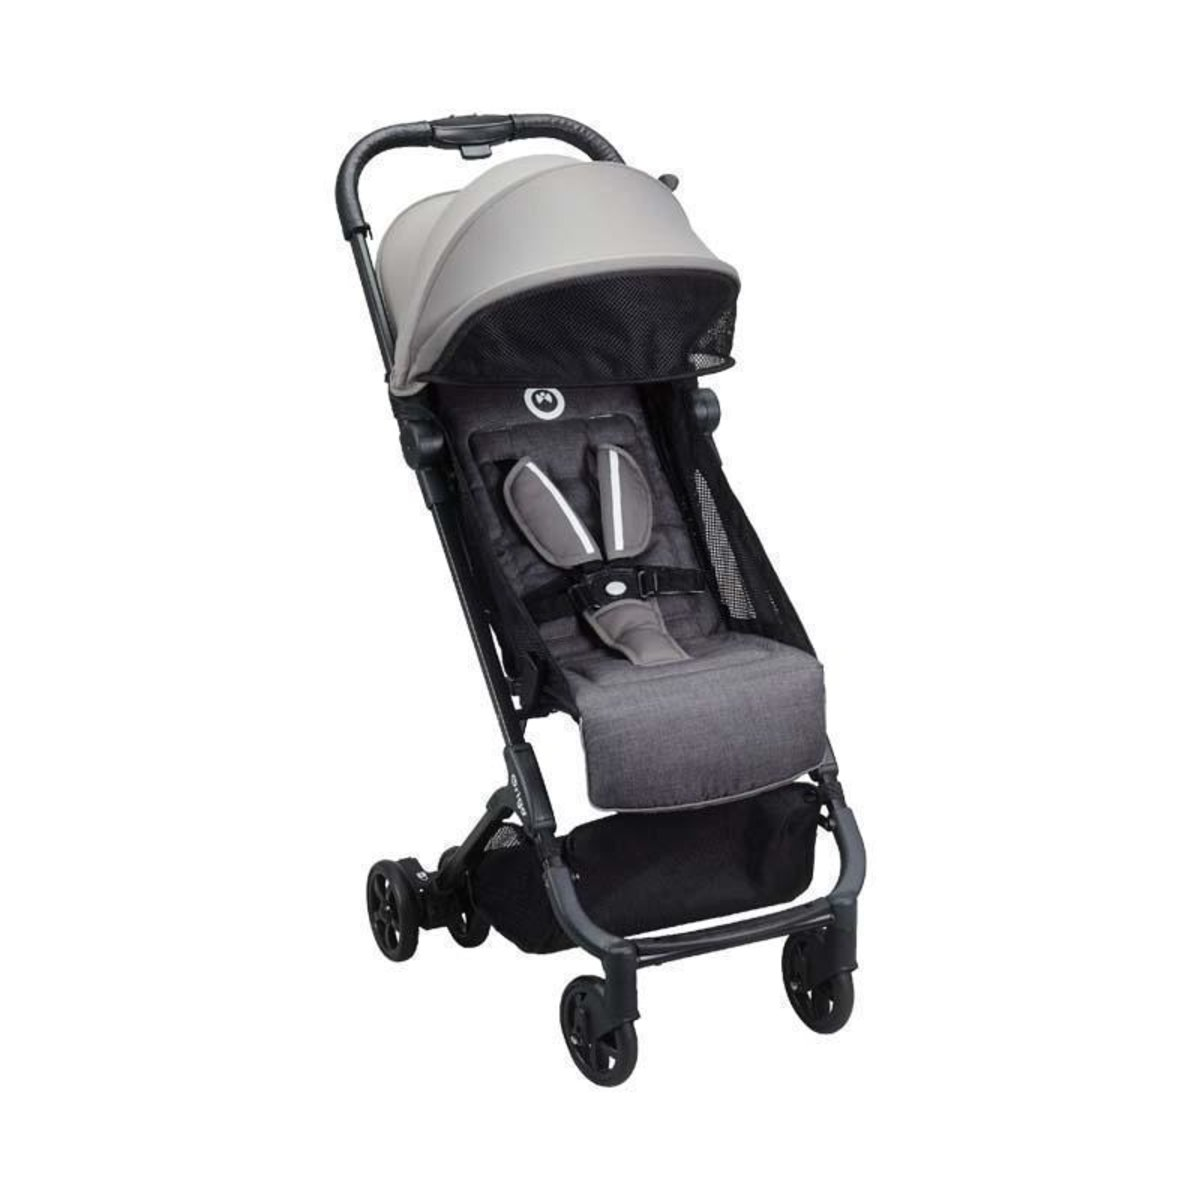 Bubble feather lightweight folding stroller 0-4 years British brands - Graphite Gray